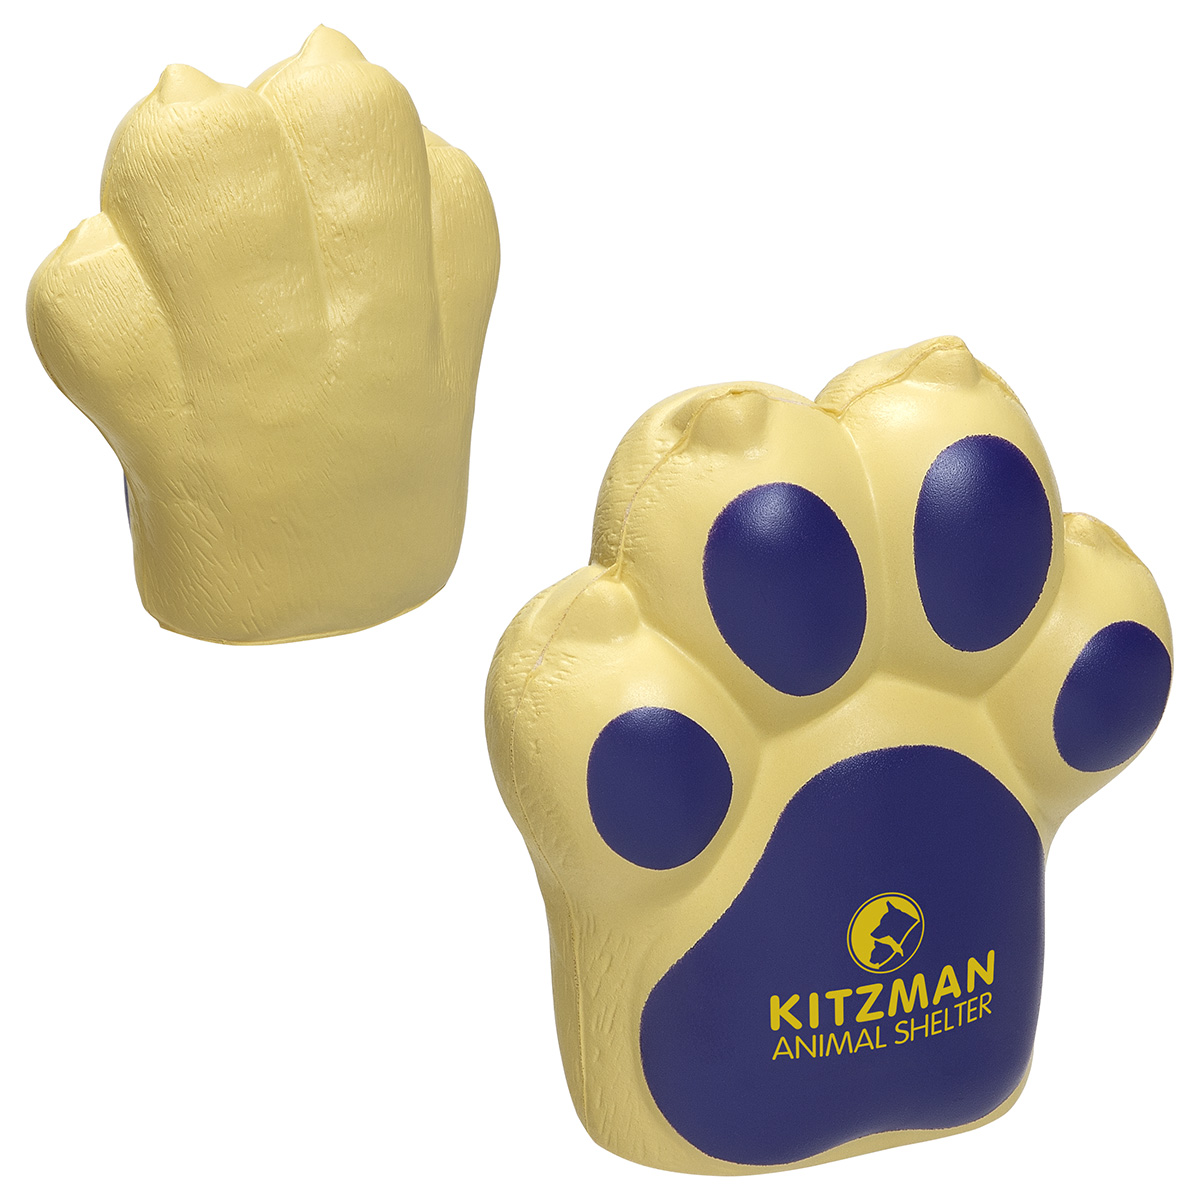 Dog Paw Stress Reliever, LPE-DP18 - 1 Colour Imprint